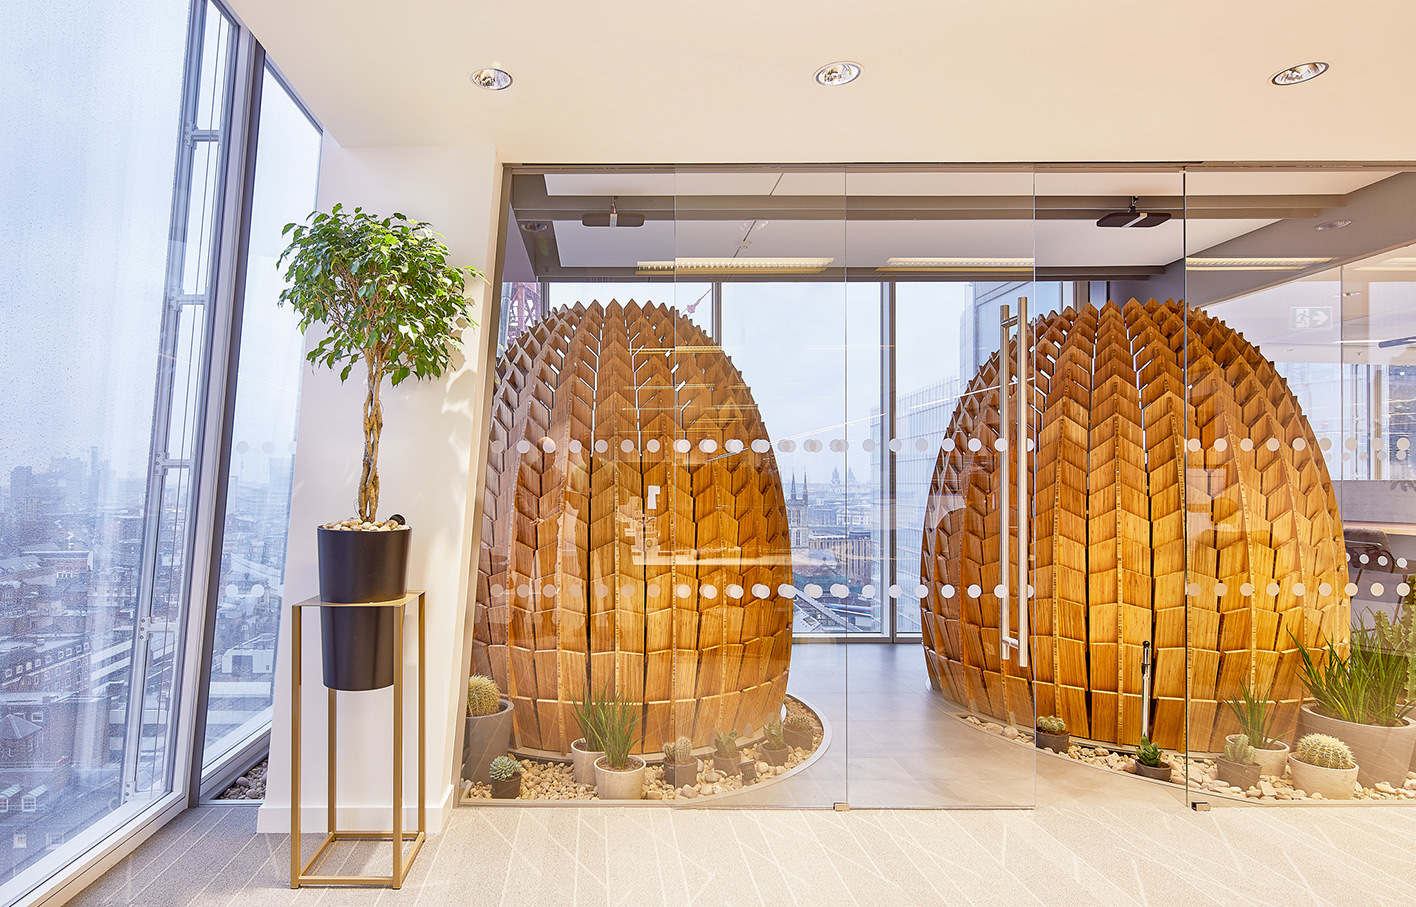 Aldworth James & Bond | Winter Gardens - The Shard | Regeneration Pods